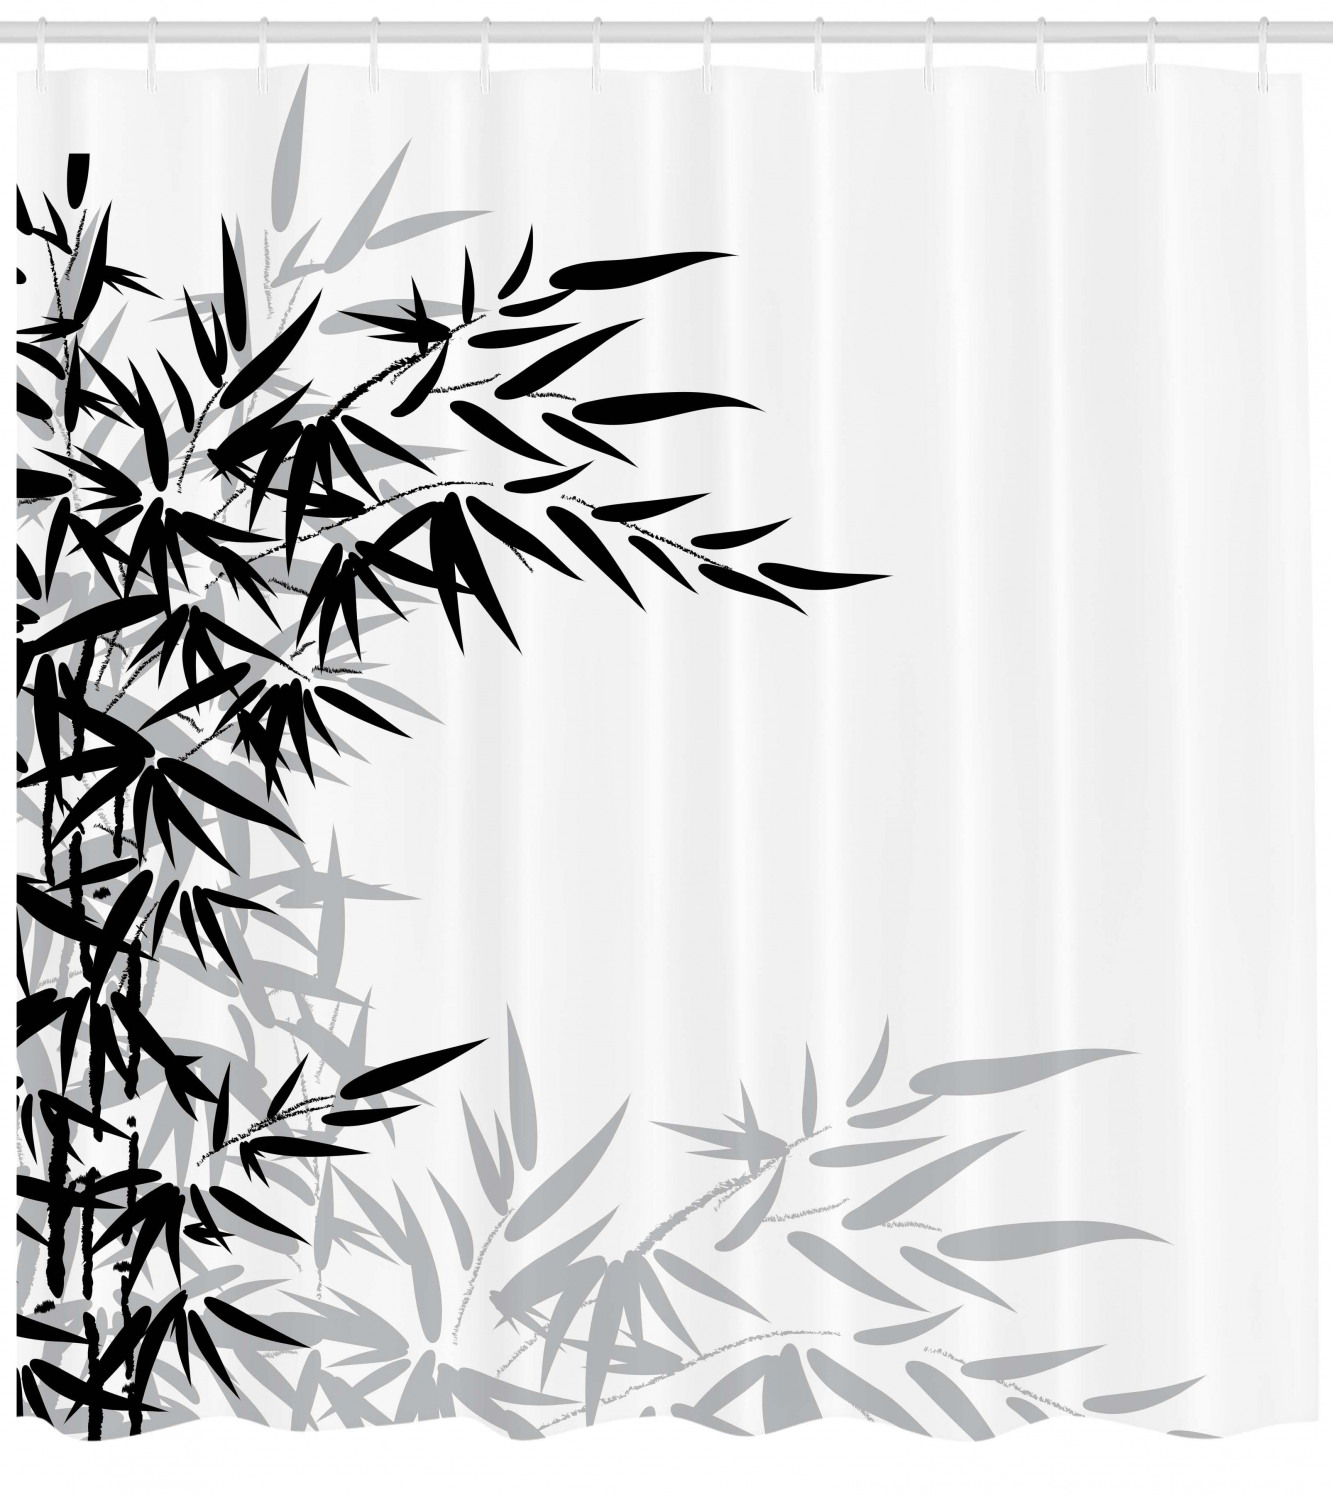 Bamboo Shower Curtain Bamboo Leaves On Clear Simple Background Organic Life Artistic Illustration Fabric Bathroom Set With Hooks Black And White